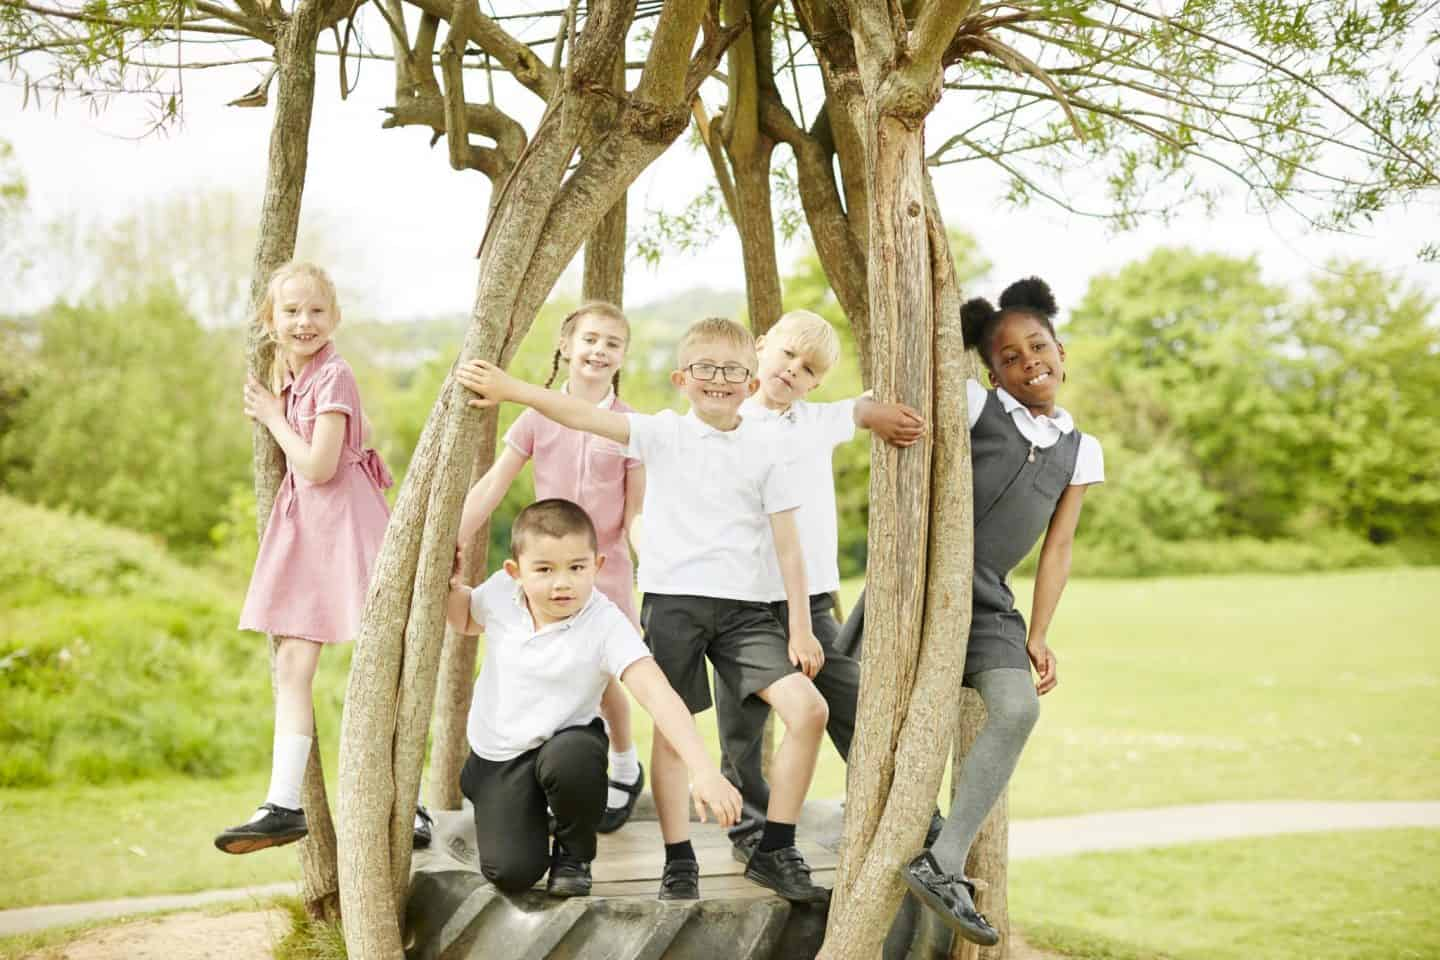 School children posing in a tree